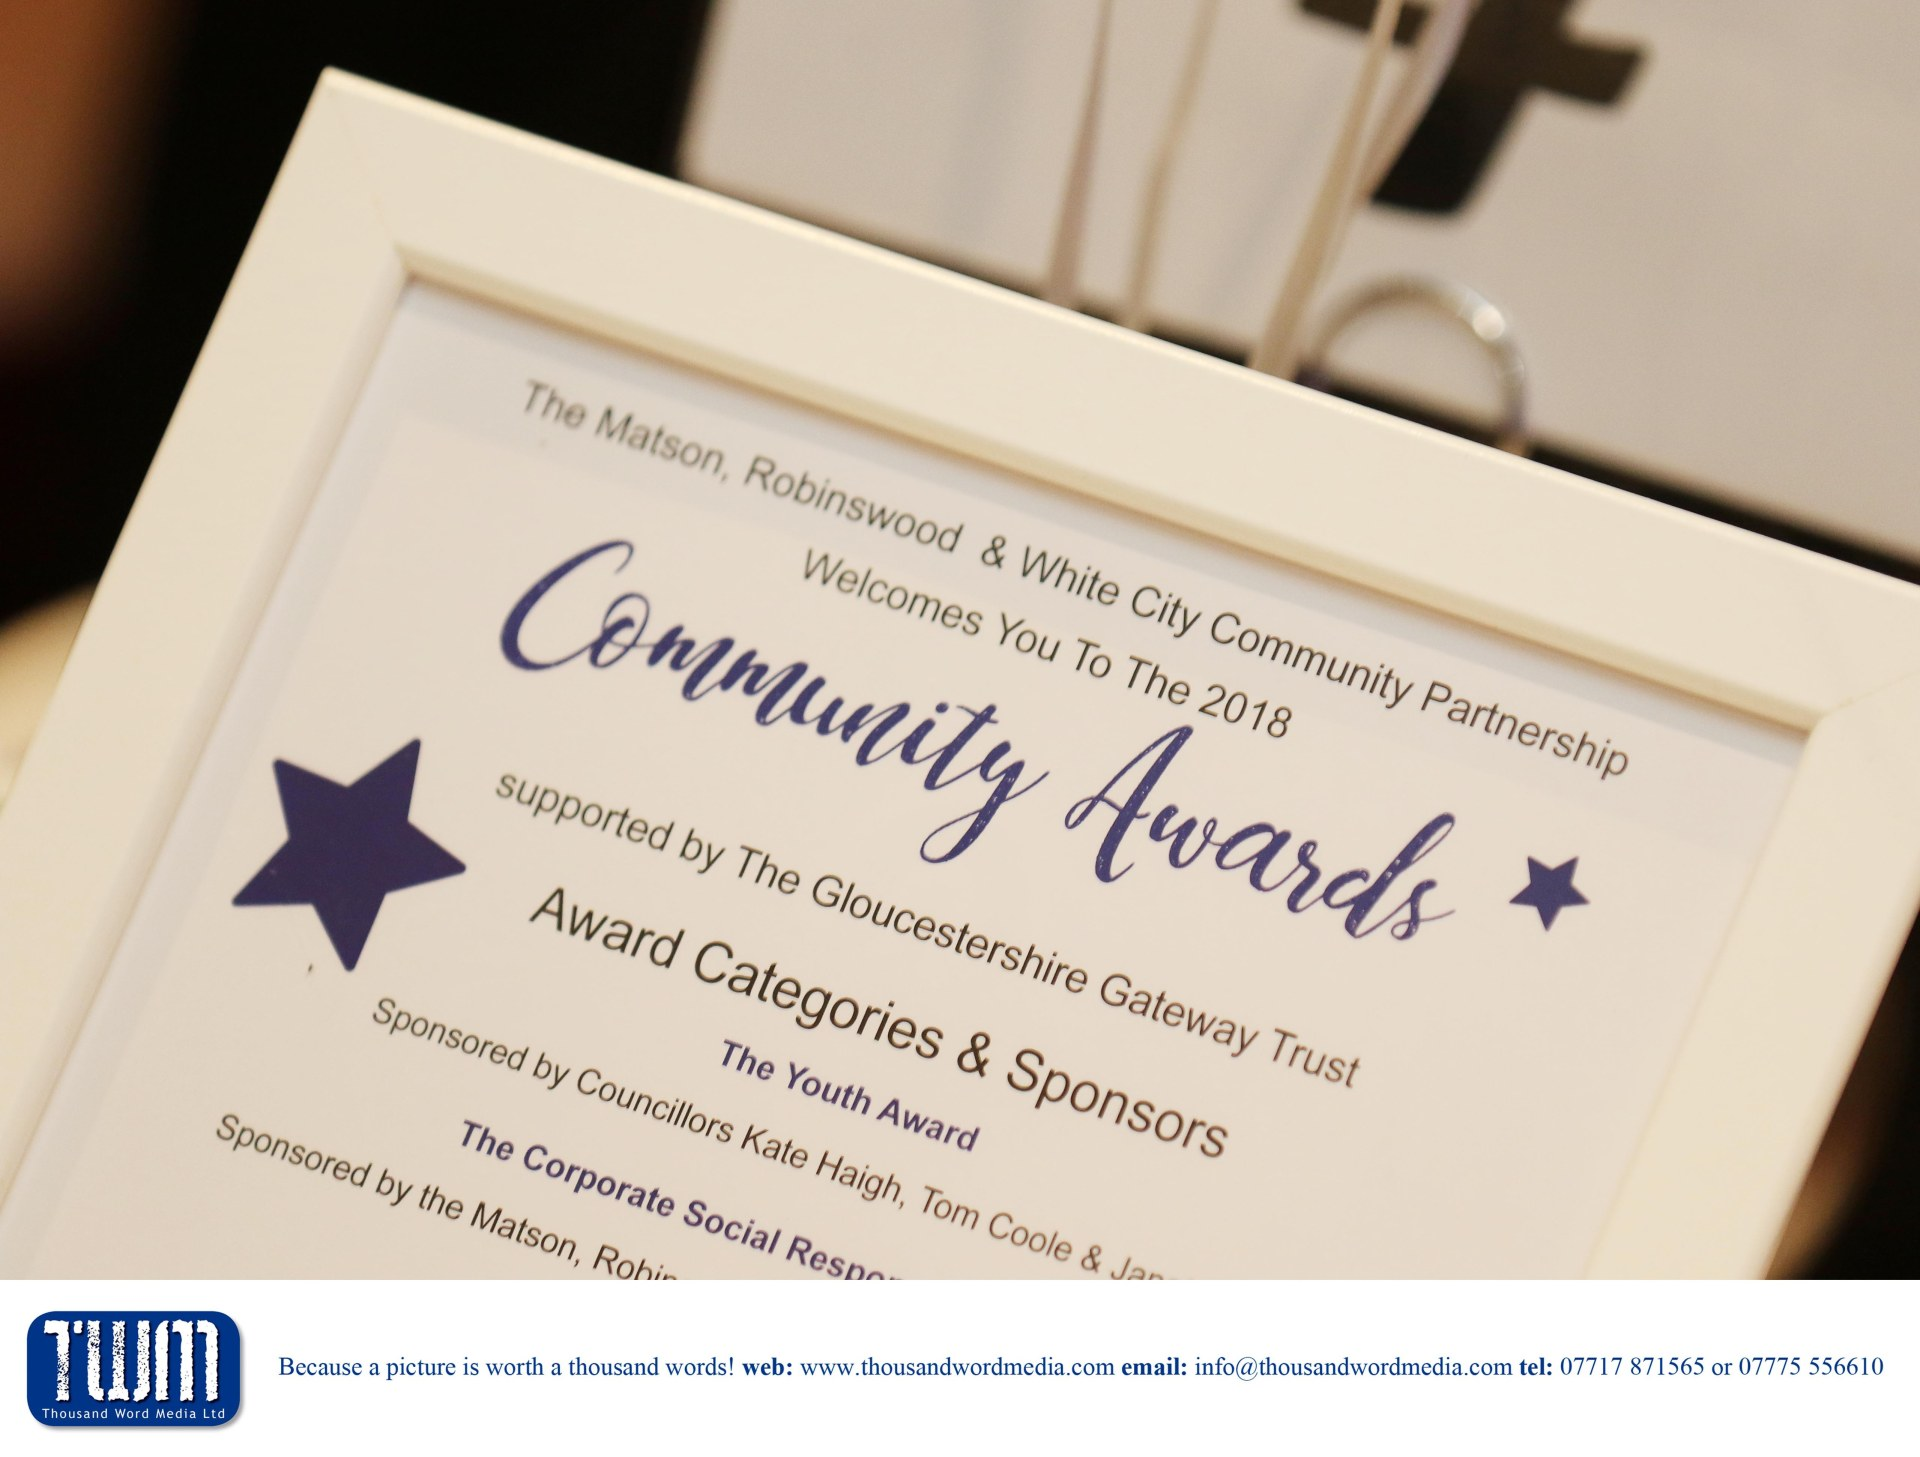 The Matson, Robinswood & White City Community Partnership 2018 Community Awards supported by The Gloucestershire Gateway Trust - 27.1.2018 Picture by Antony Thompson - Thousand Word Media, NO SALES, NO SYNDICATION. Contact for more information mob: 07775556610 web: www.thousandwordmedia.com email: antony@thousandwordmedia.com The photographic copyright (© 2017) is exclusively retained by the works creator at all times and sales, syndication or offering the work for future publication to a third party without the photographer's knowledge or agreement is in breach of the Copyright Designs and Patents Act 1988, (Part 1, Section 4, 2b). Please contact the photographer should you have any questions with regard to the use of the attached work and any rights involved.